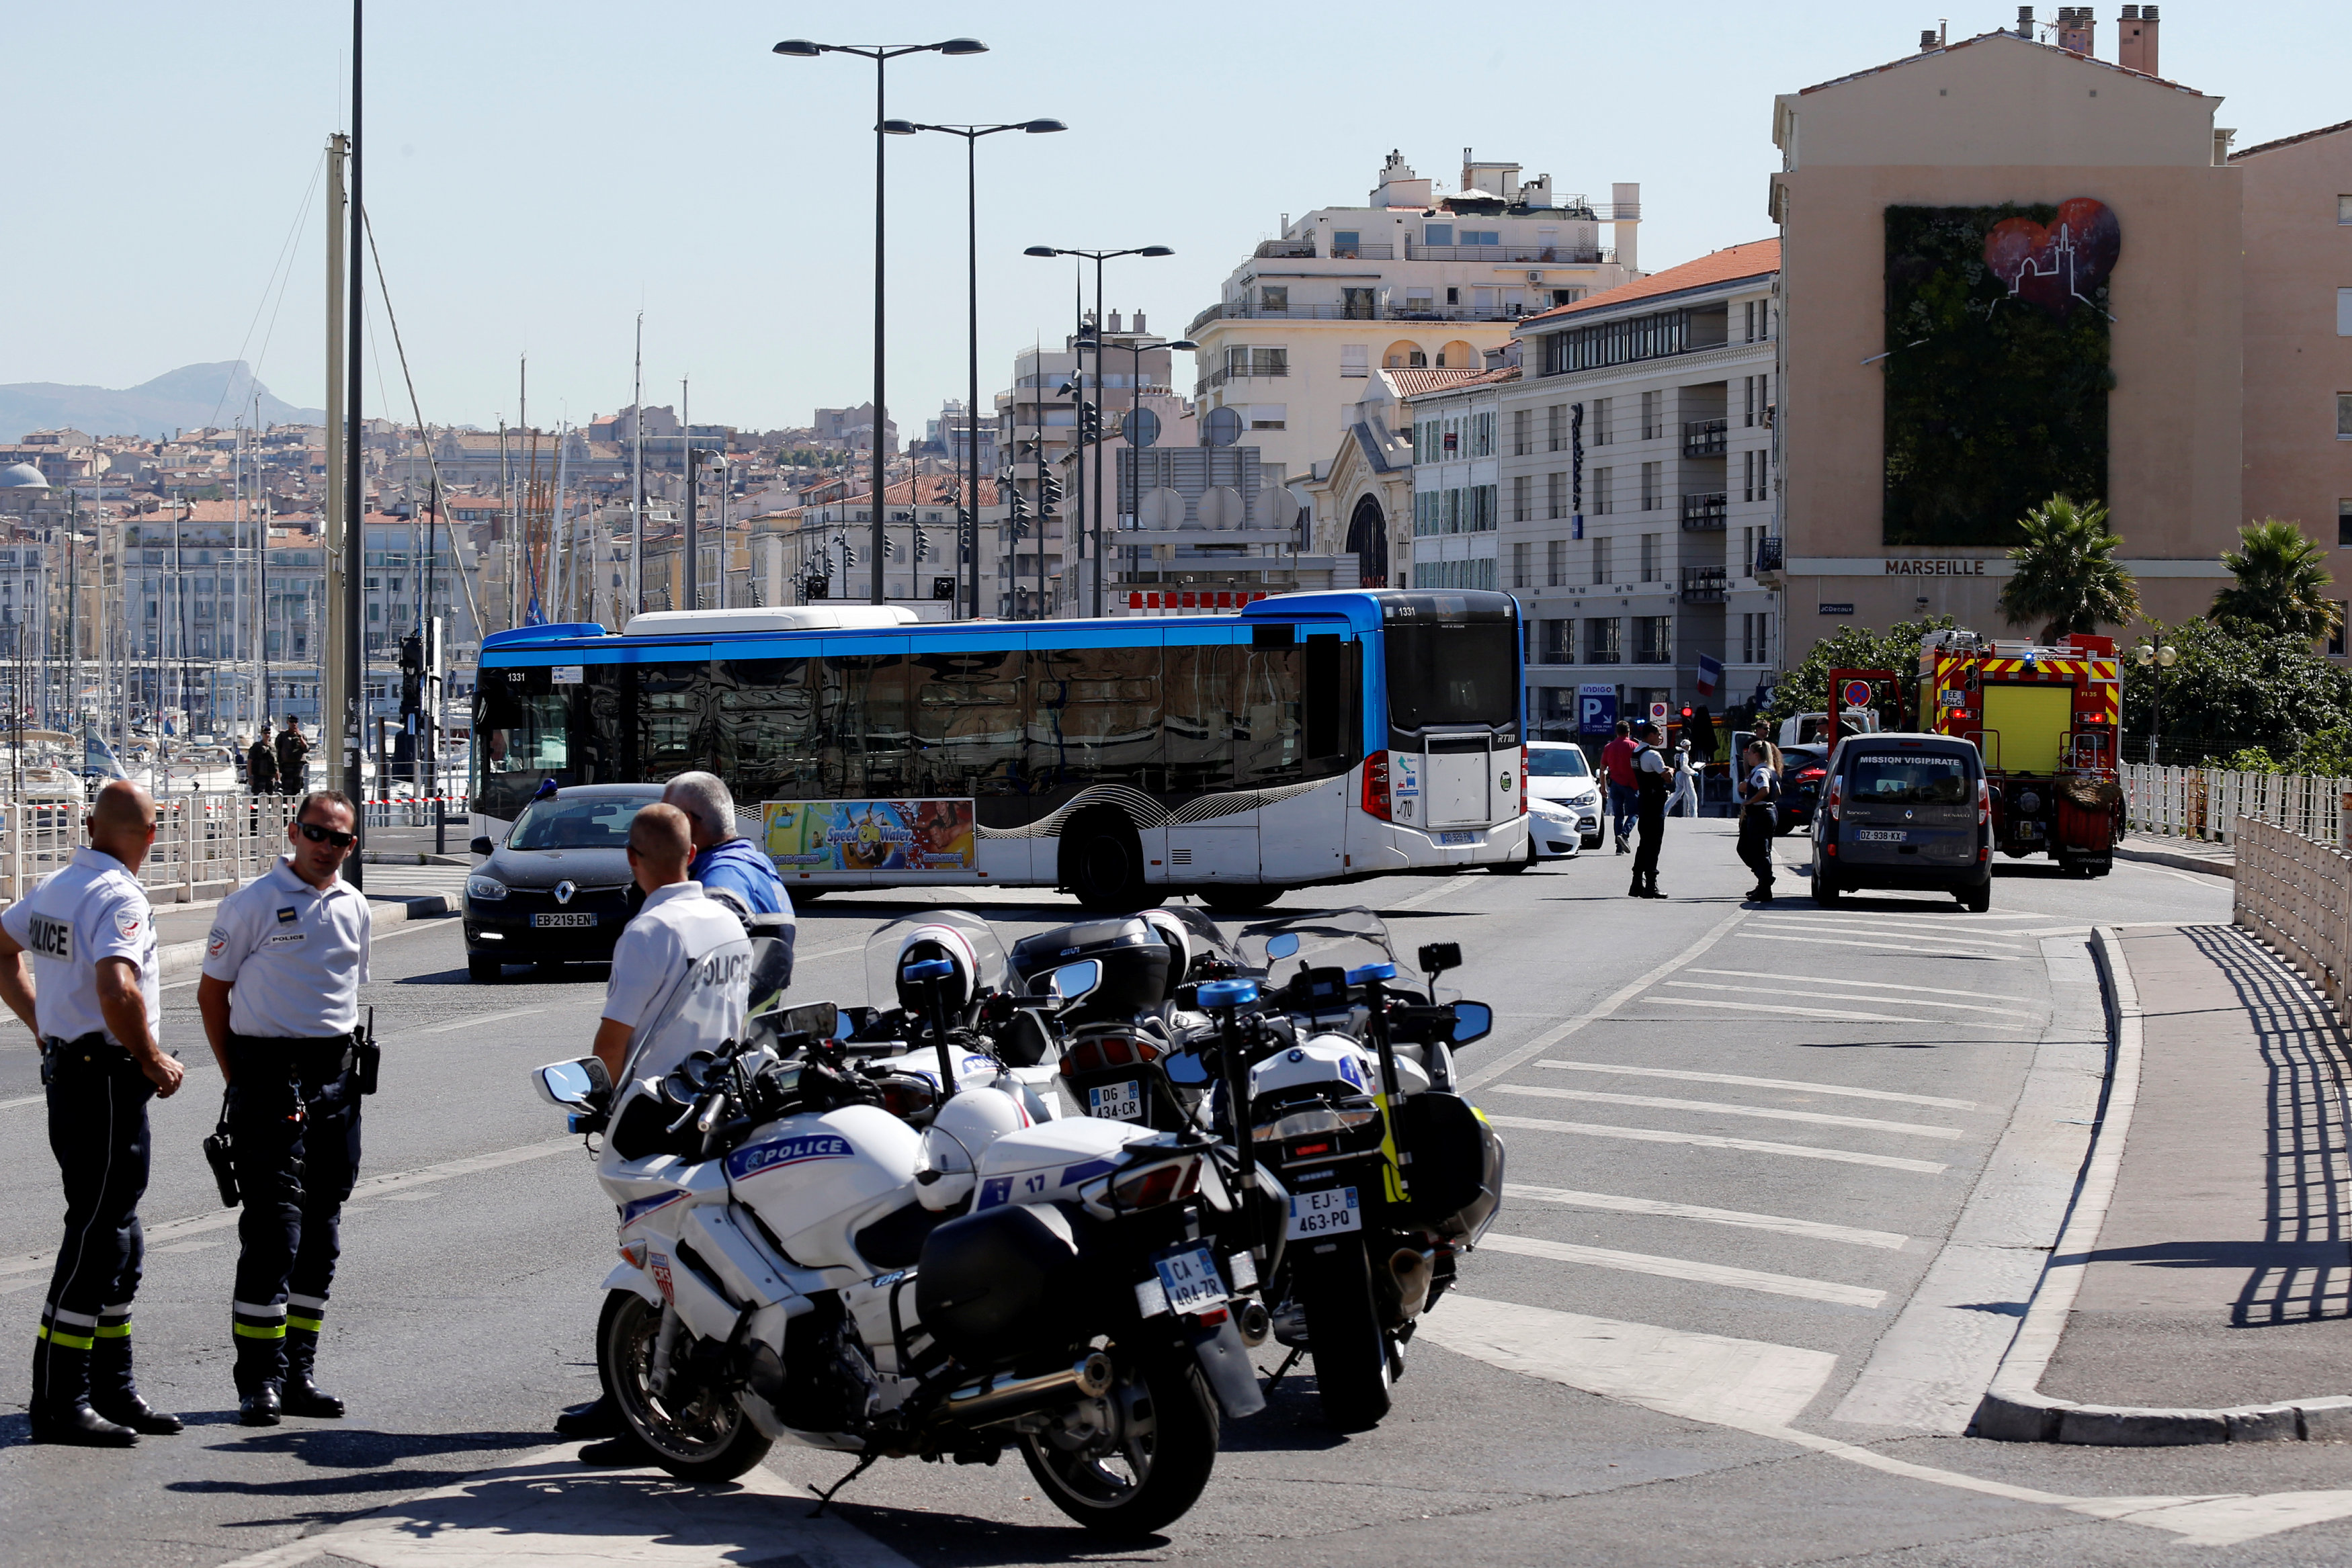 French police secure the area in the French port city of Marseille, France, August 21, 2017 where one person was killed and another injured after a vehicle crashed into two bus shelters, a French police source told Reuters on Monday. REUTERS/Philippe Laurenson